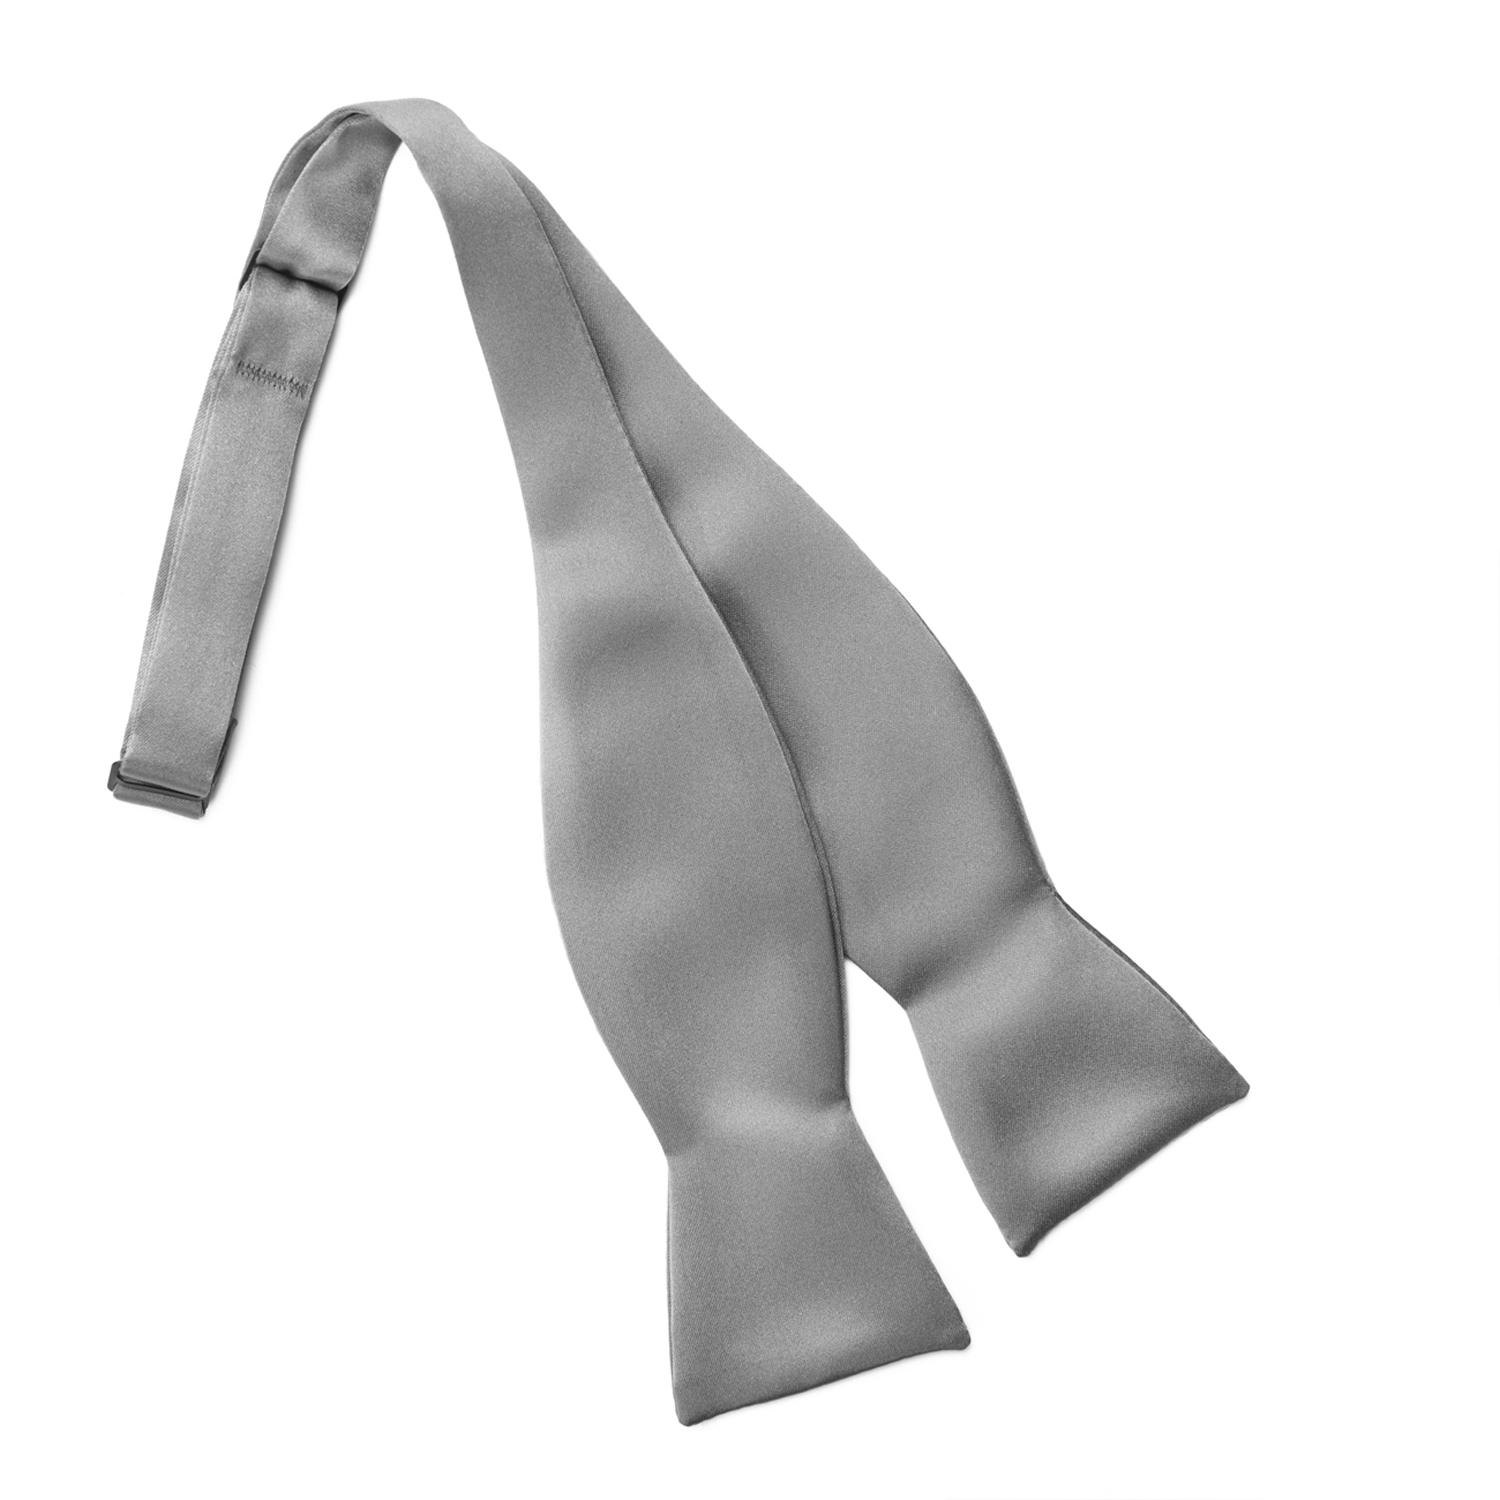 We also have a matching self tie to tie!